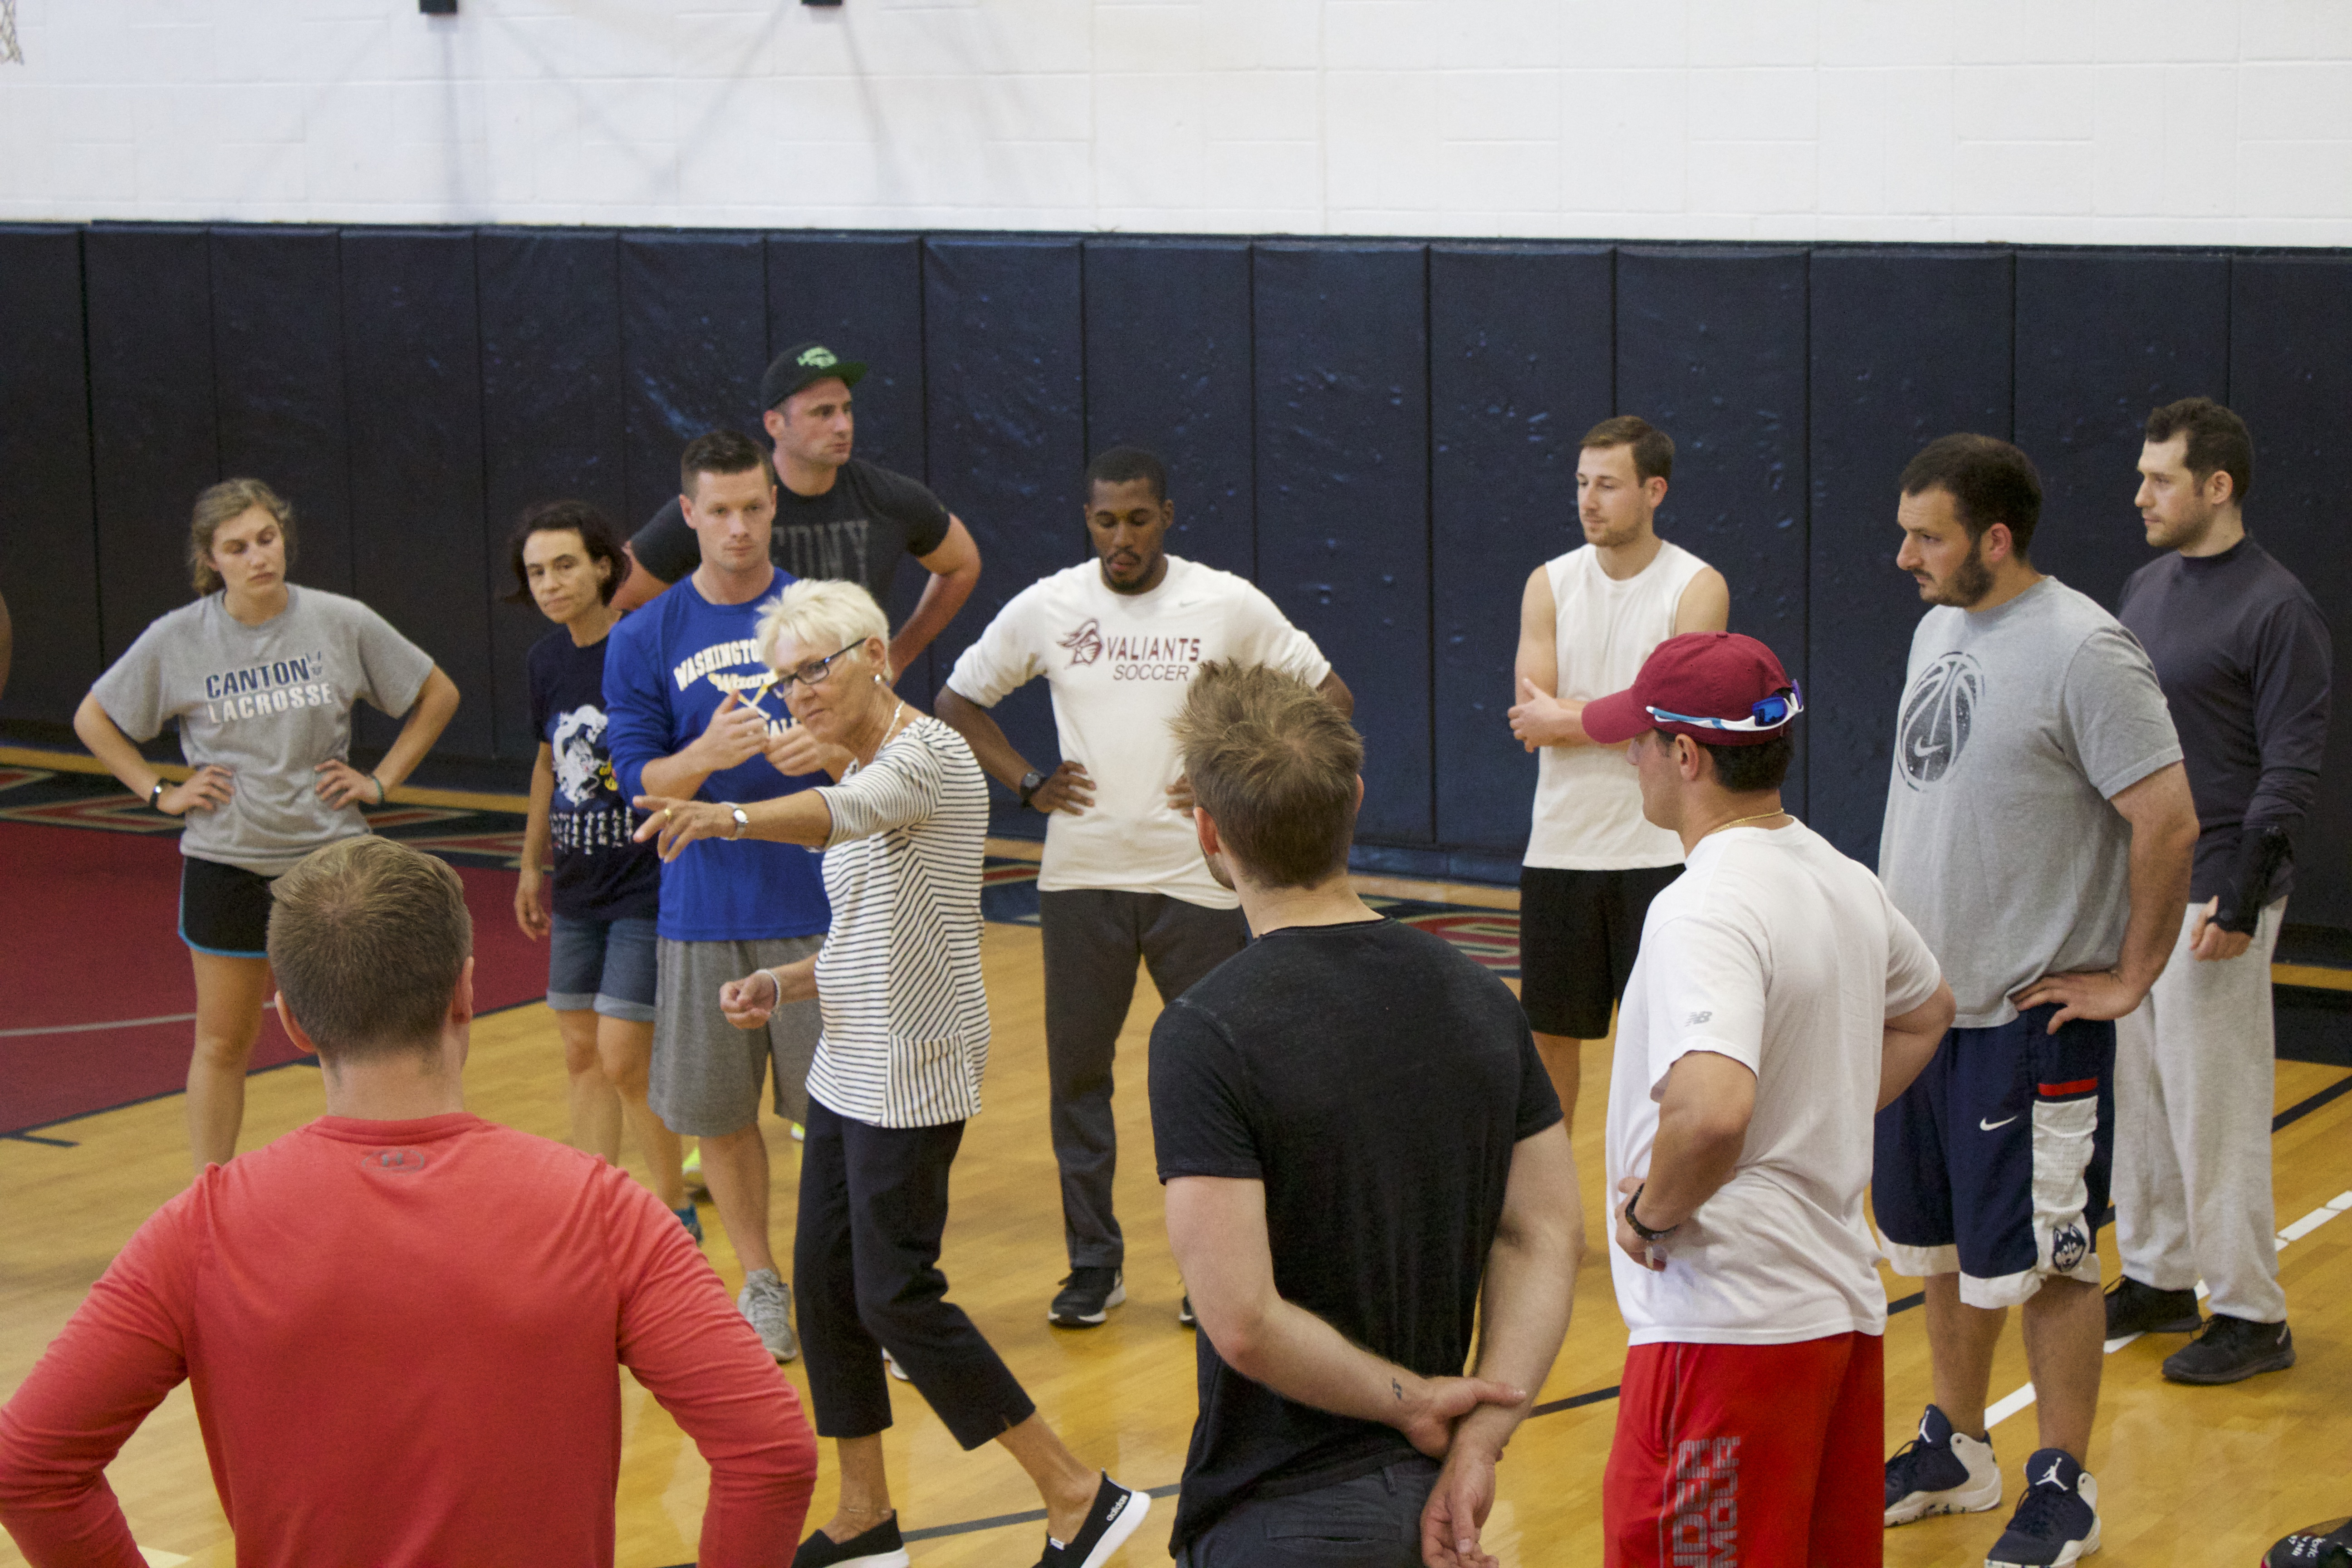 Physical education image for Manhattanville College